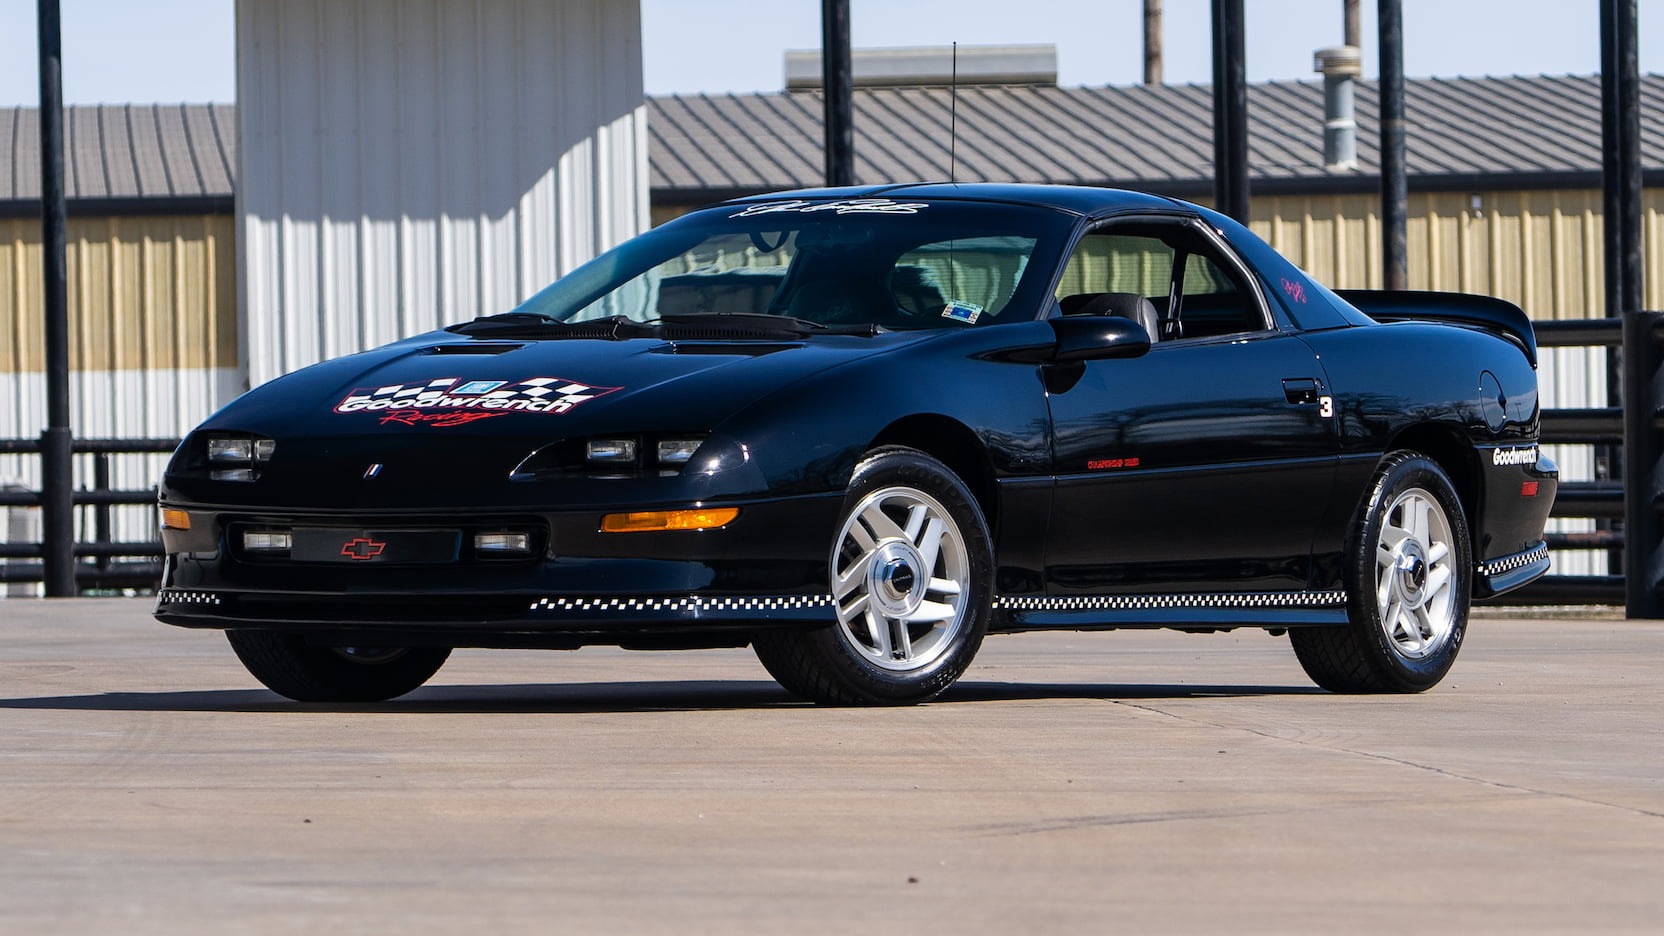 1995 Chevrolet Camaro Z28 Earnhardt Edition